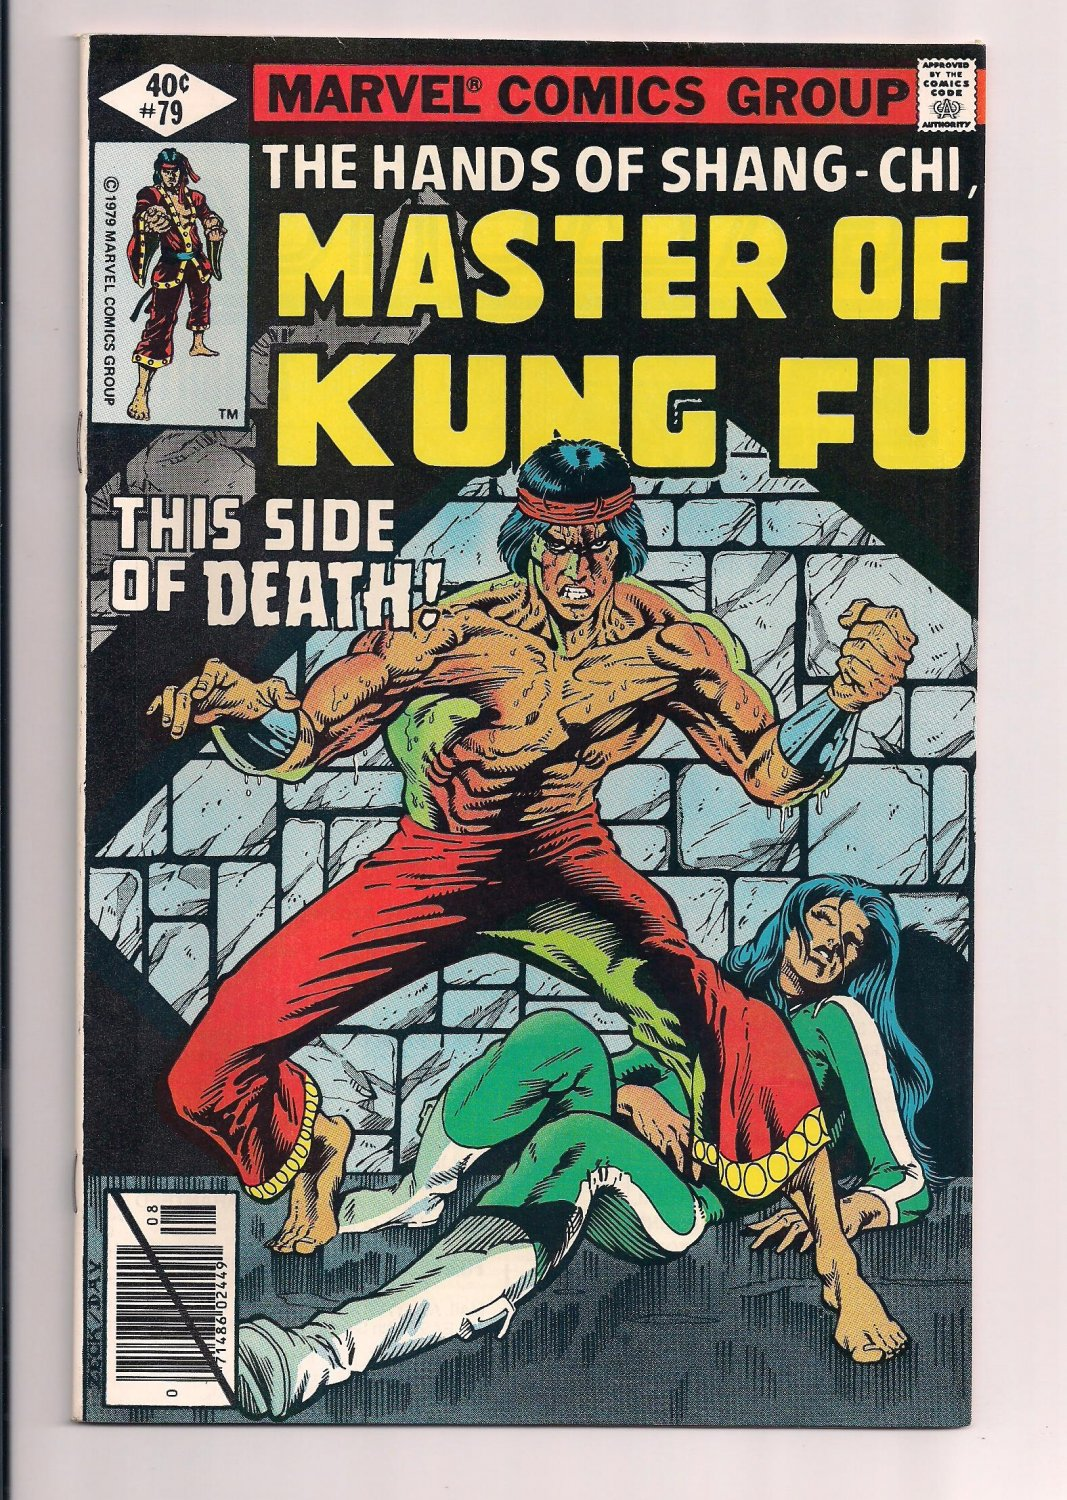 Shang-Chi, Master of Kung Fu #79 (1979) very fine / near mint condition comic